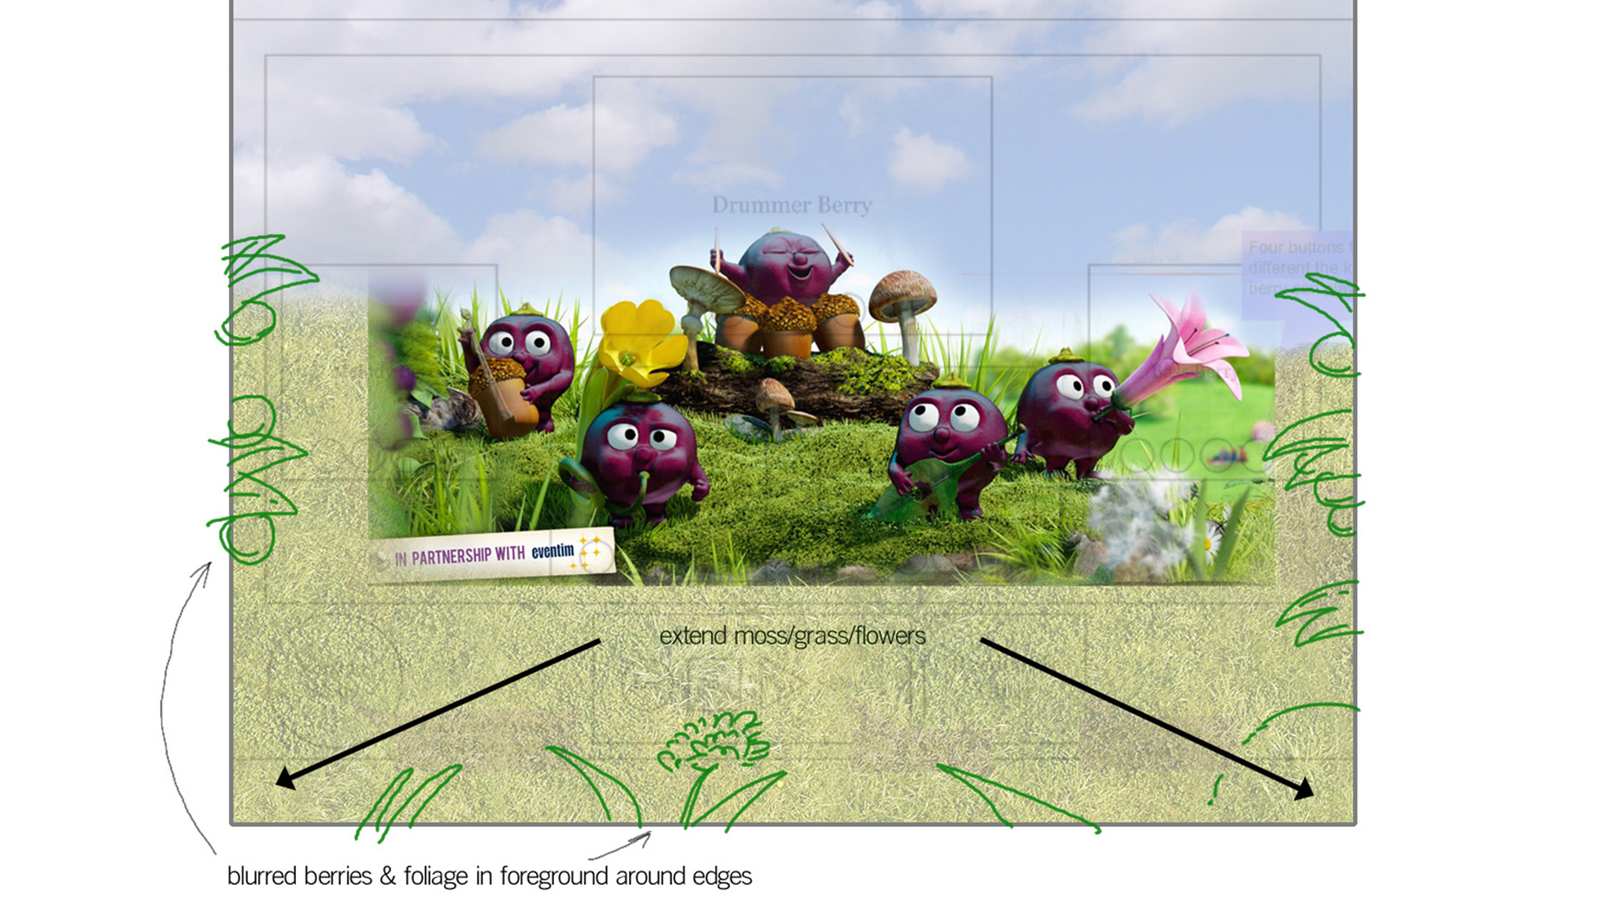 Layout sketches for ribena berry game, including 3d berrys and assets